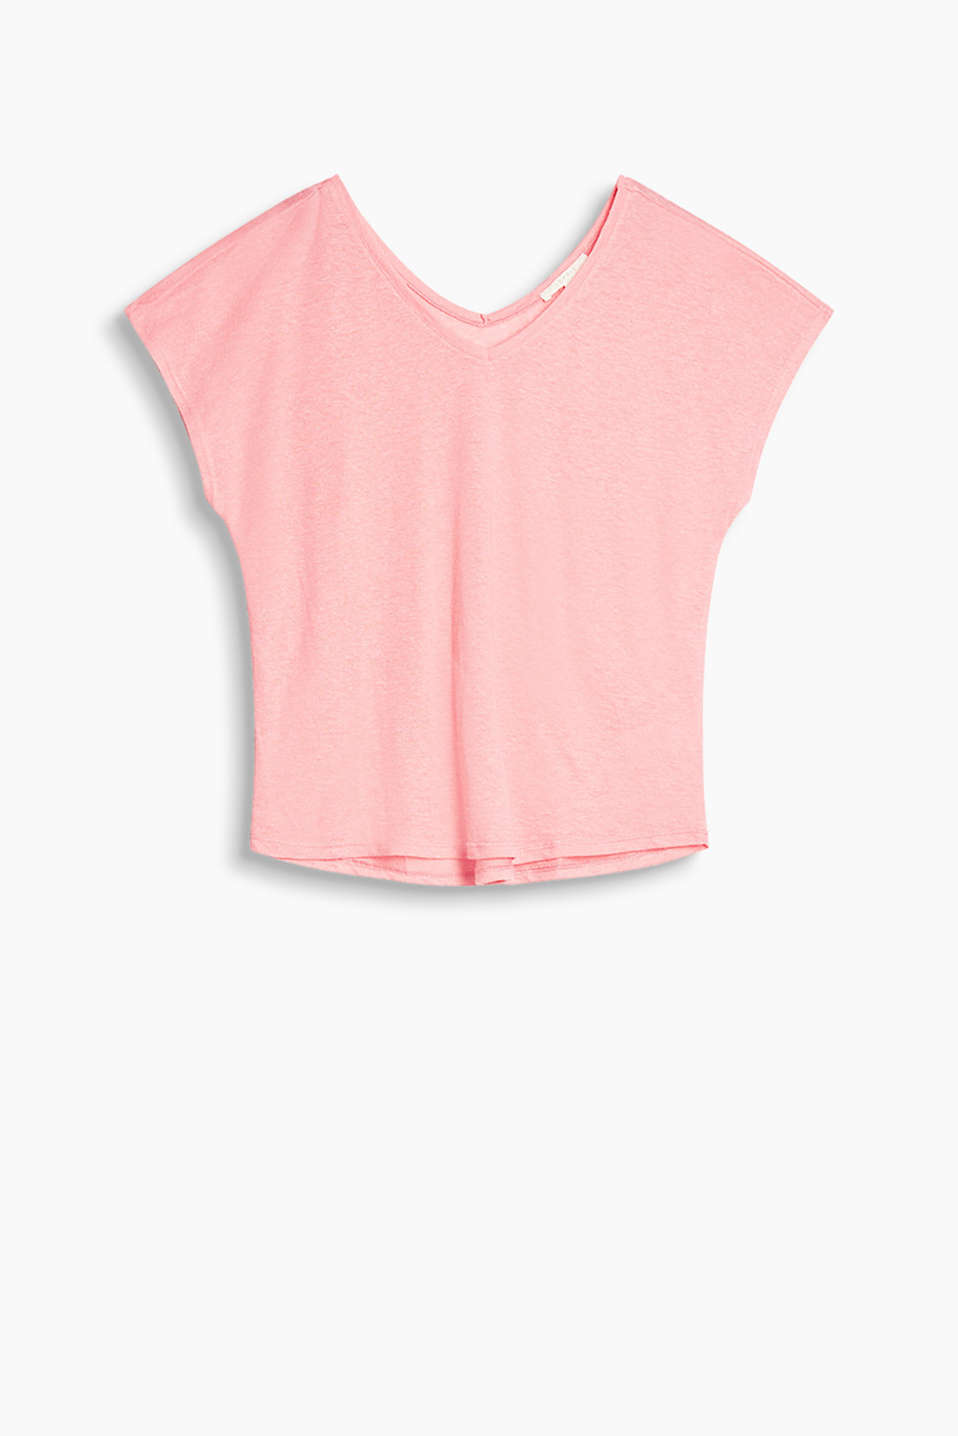 Lightweight top with plunging V-neck front and back, made of airy blended linen